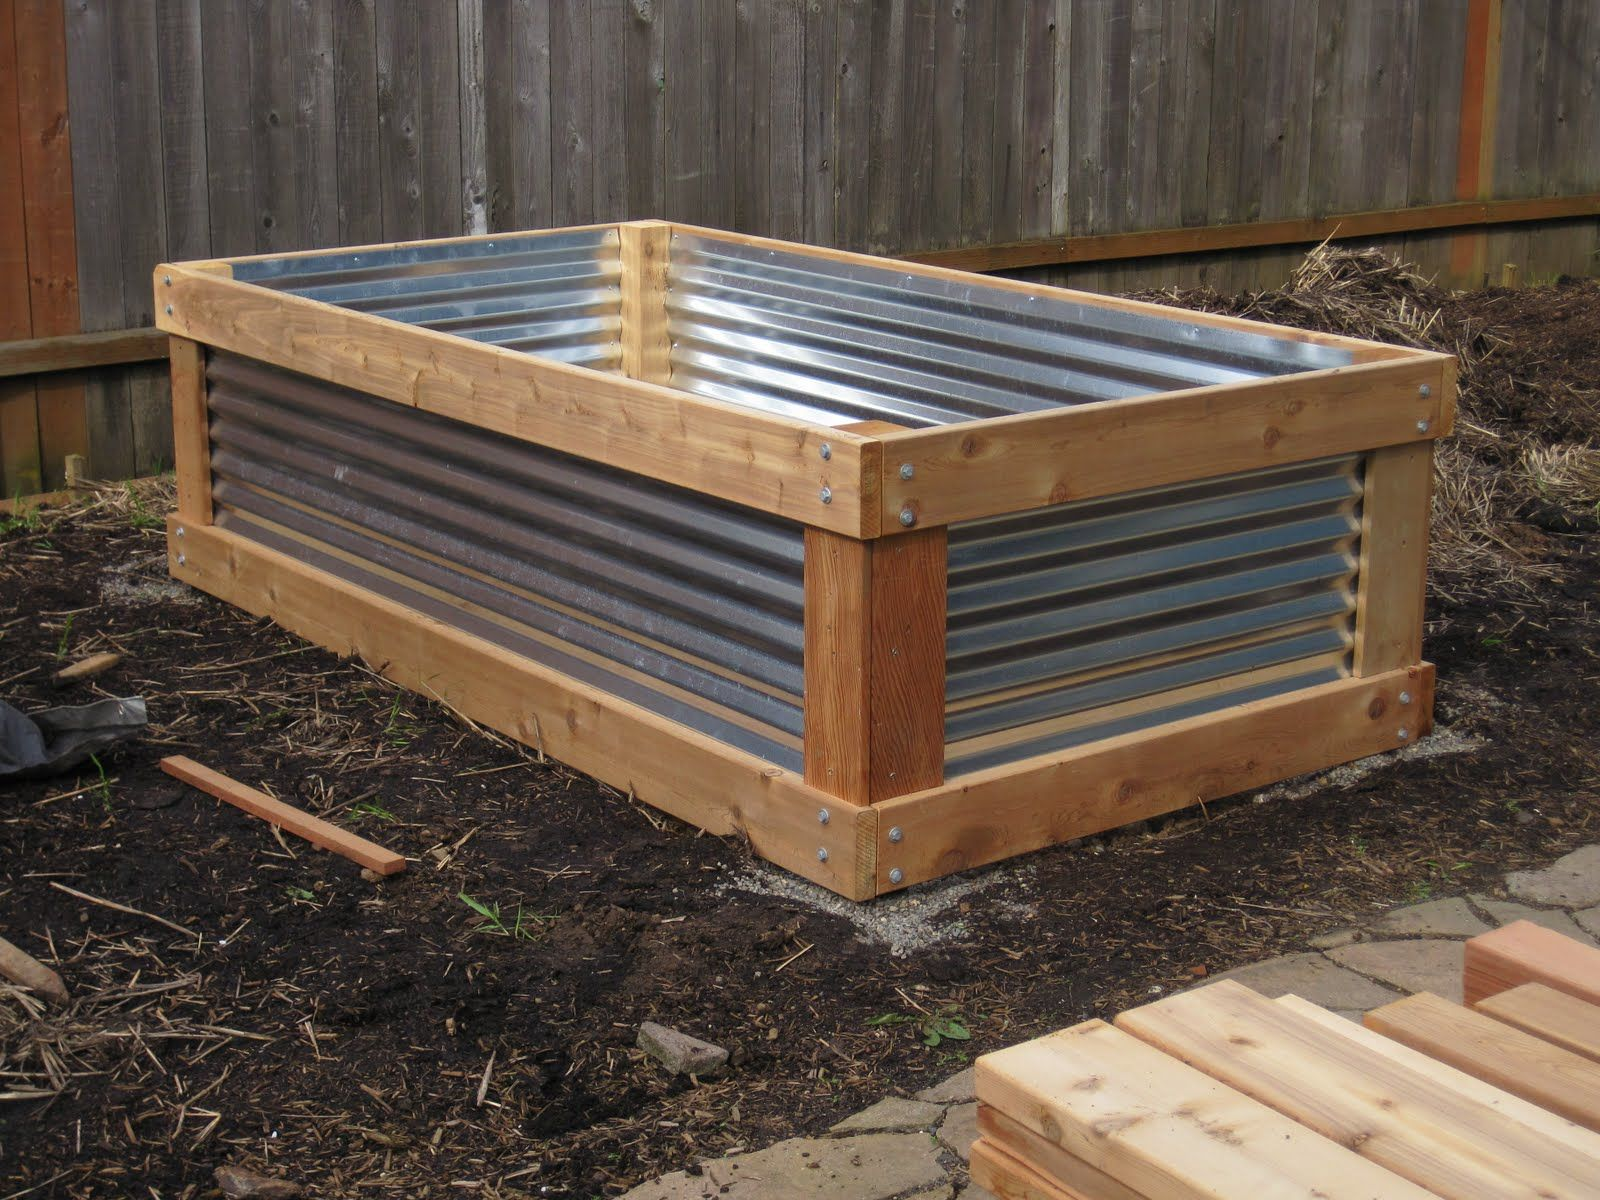 Raised Bed Garden Design Ideas find this pin and more on diy landscape and gardening design diy raised bed Gardening In Small Spaces Container Gardens Raised Beds